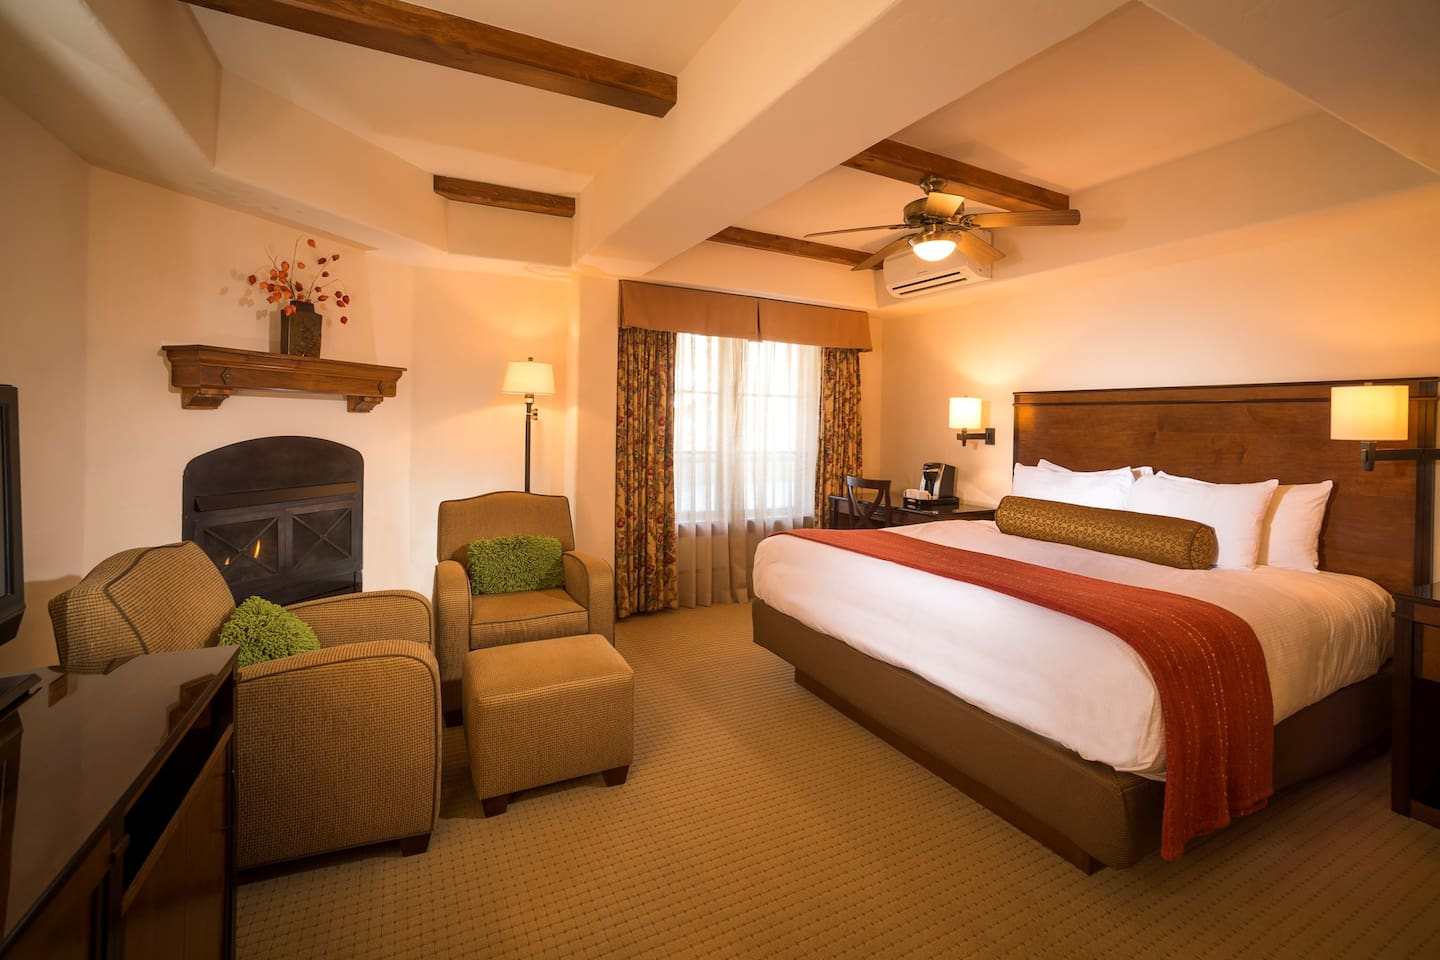 Get a good night's sleep in the plush king sized bed.